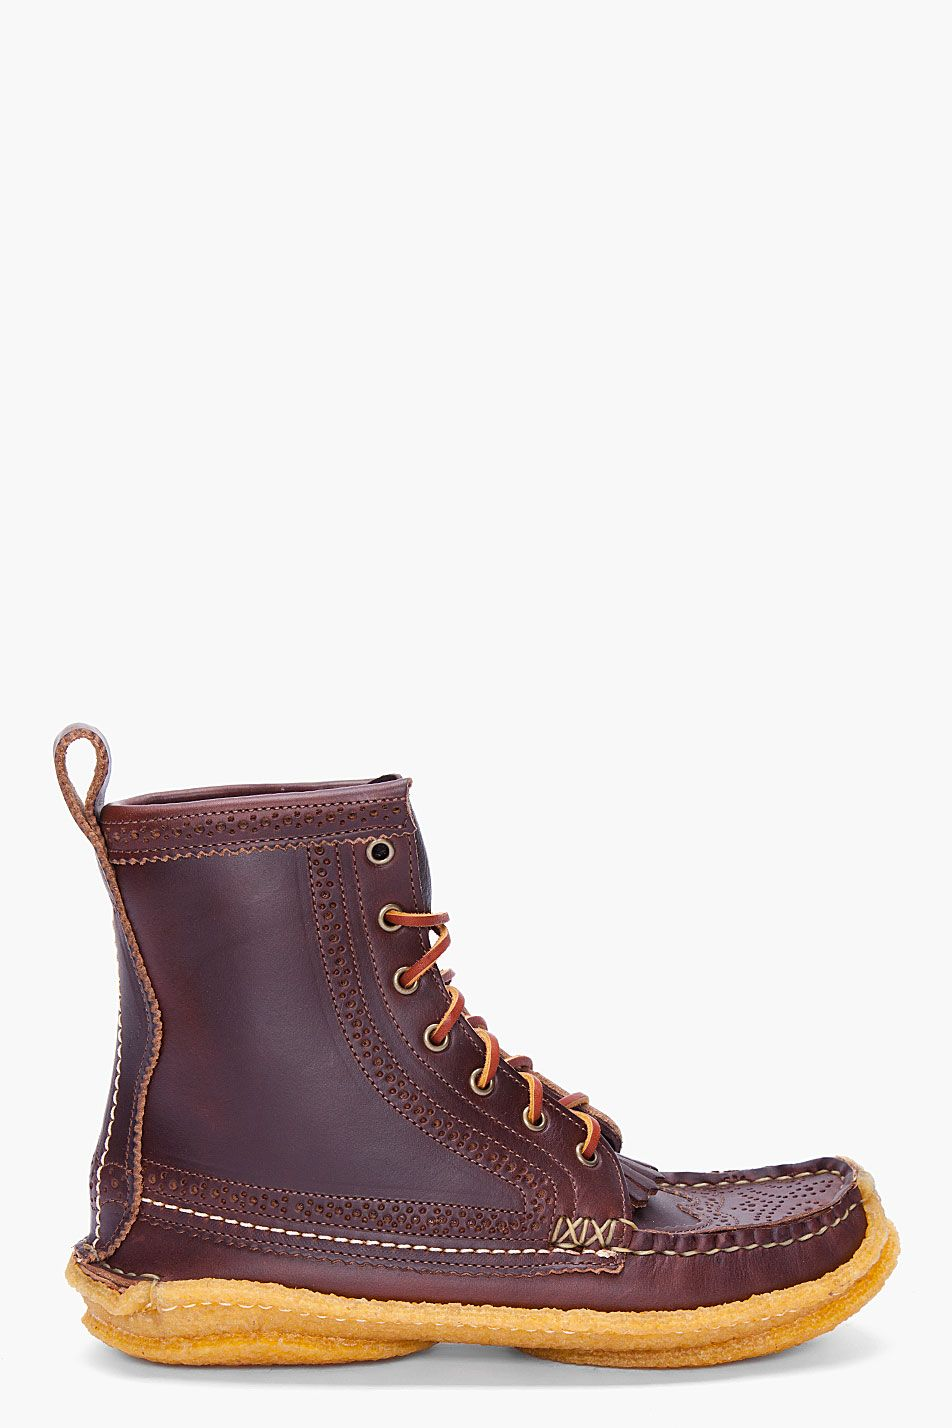 Yuketen Brown Wingtip Huntings Boots